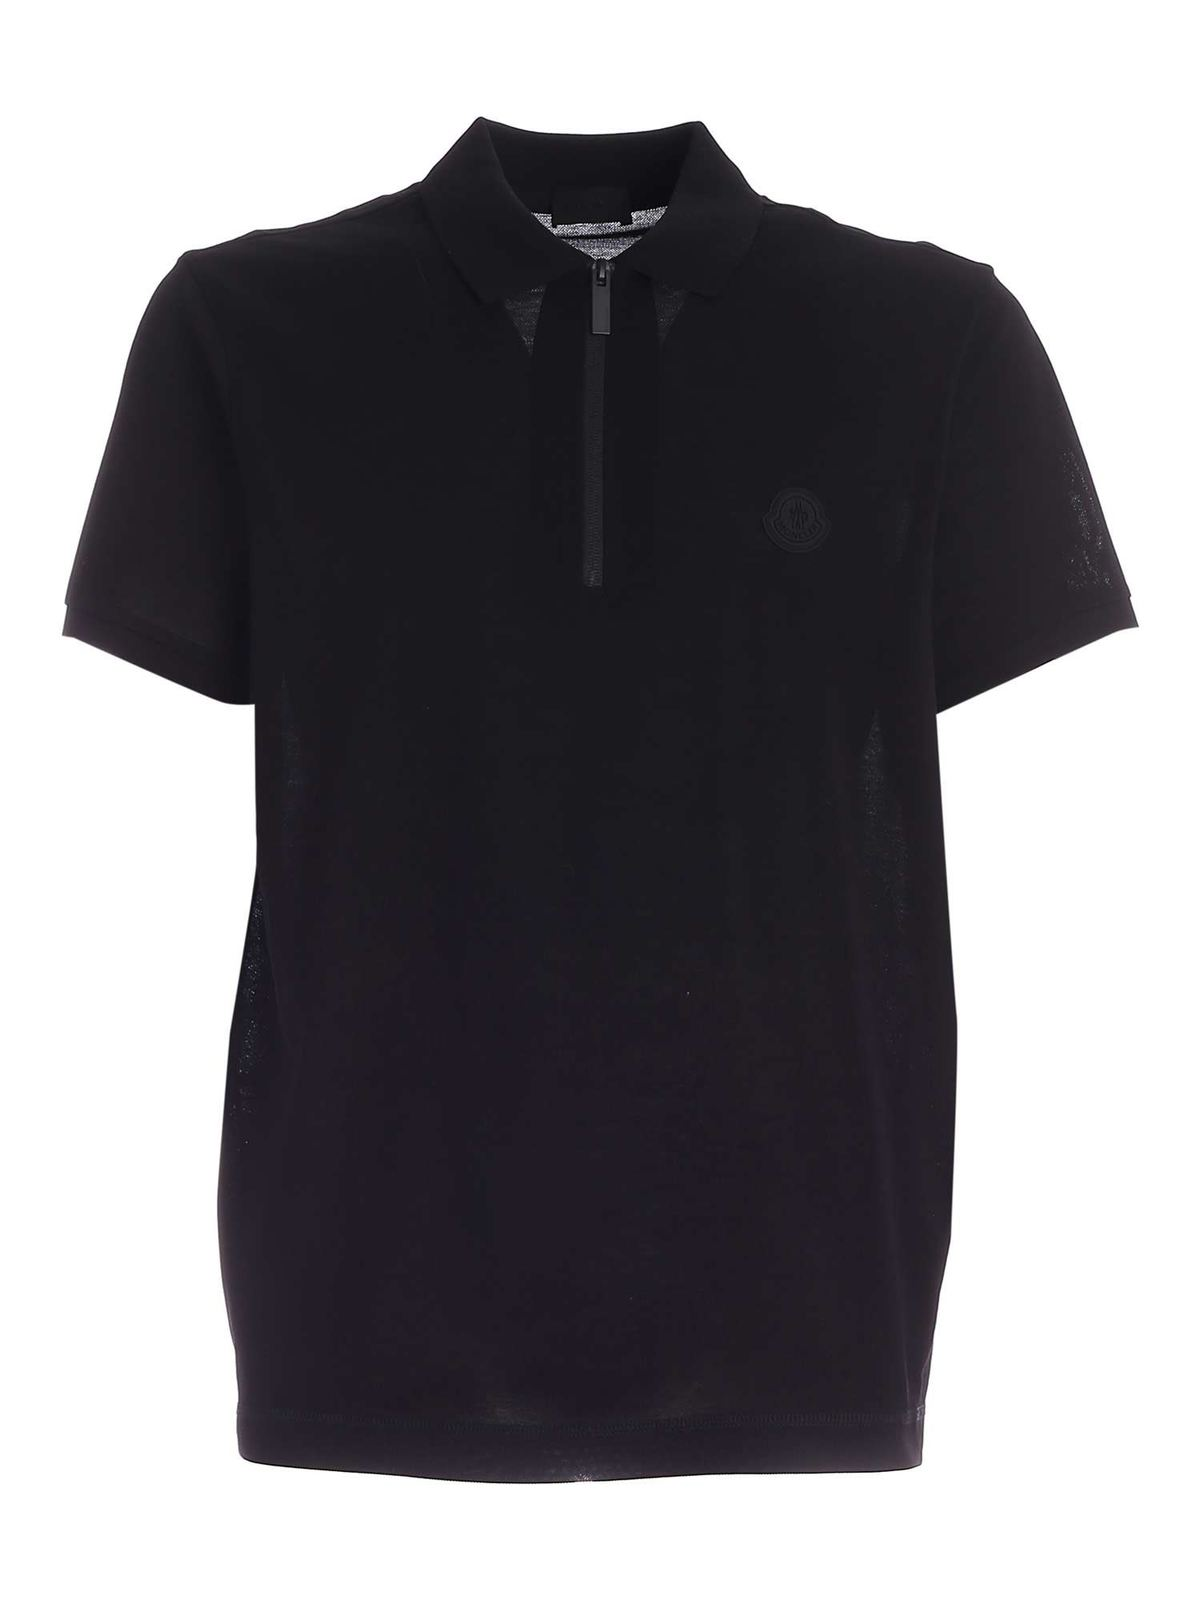 Moncler LOGO PATCH POLO SHIRT IN BLACK